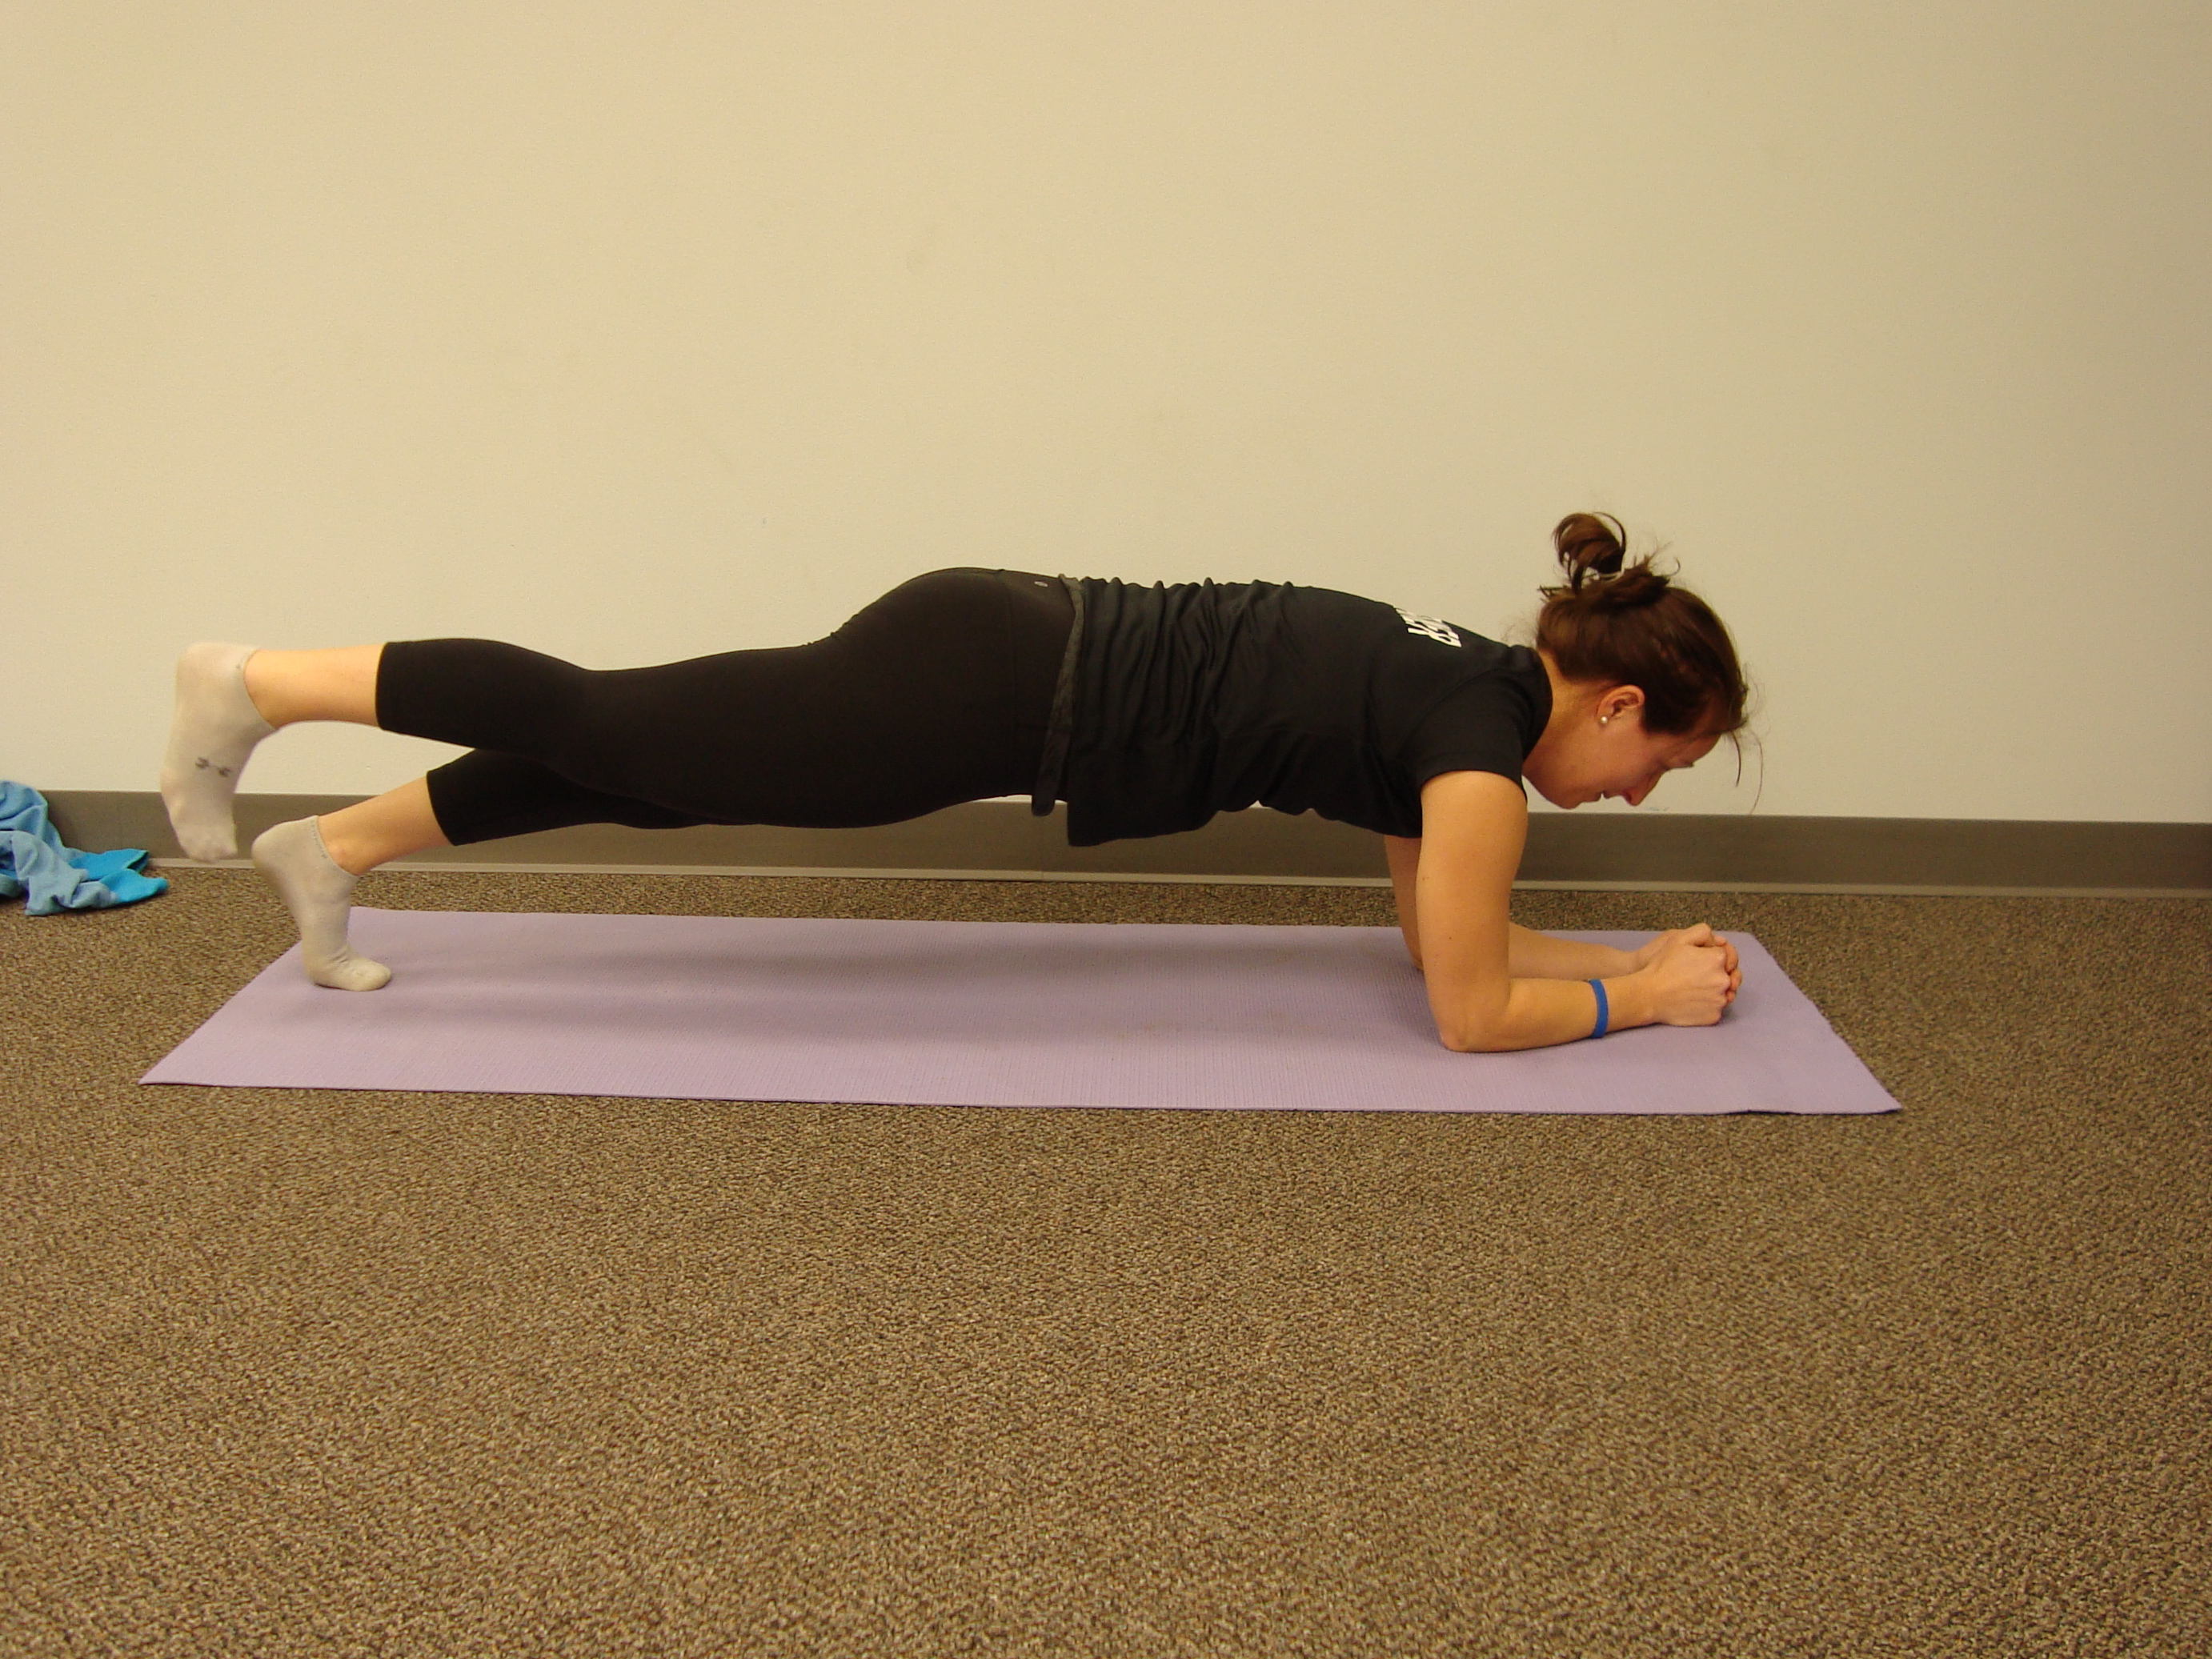 Plank Progression #4: Single-leg Plank - Lift one leg up while maintaining the plank position